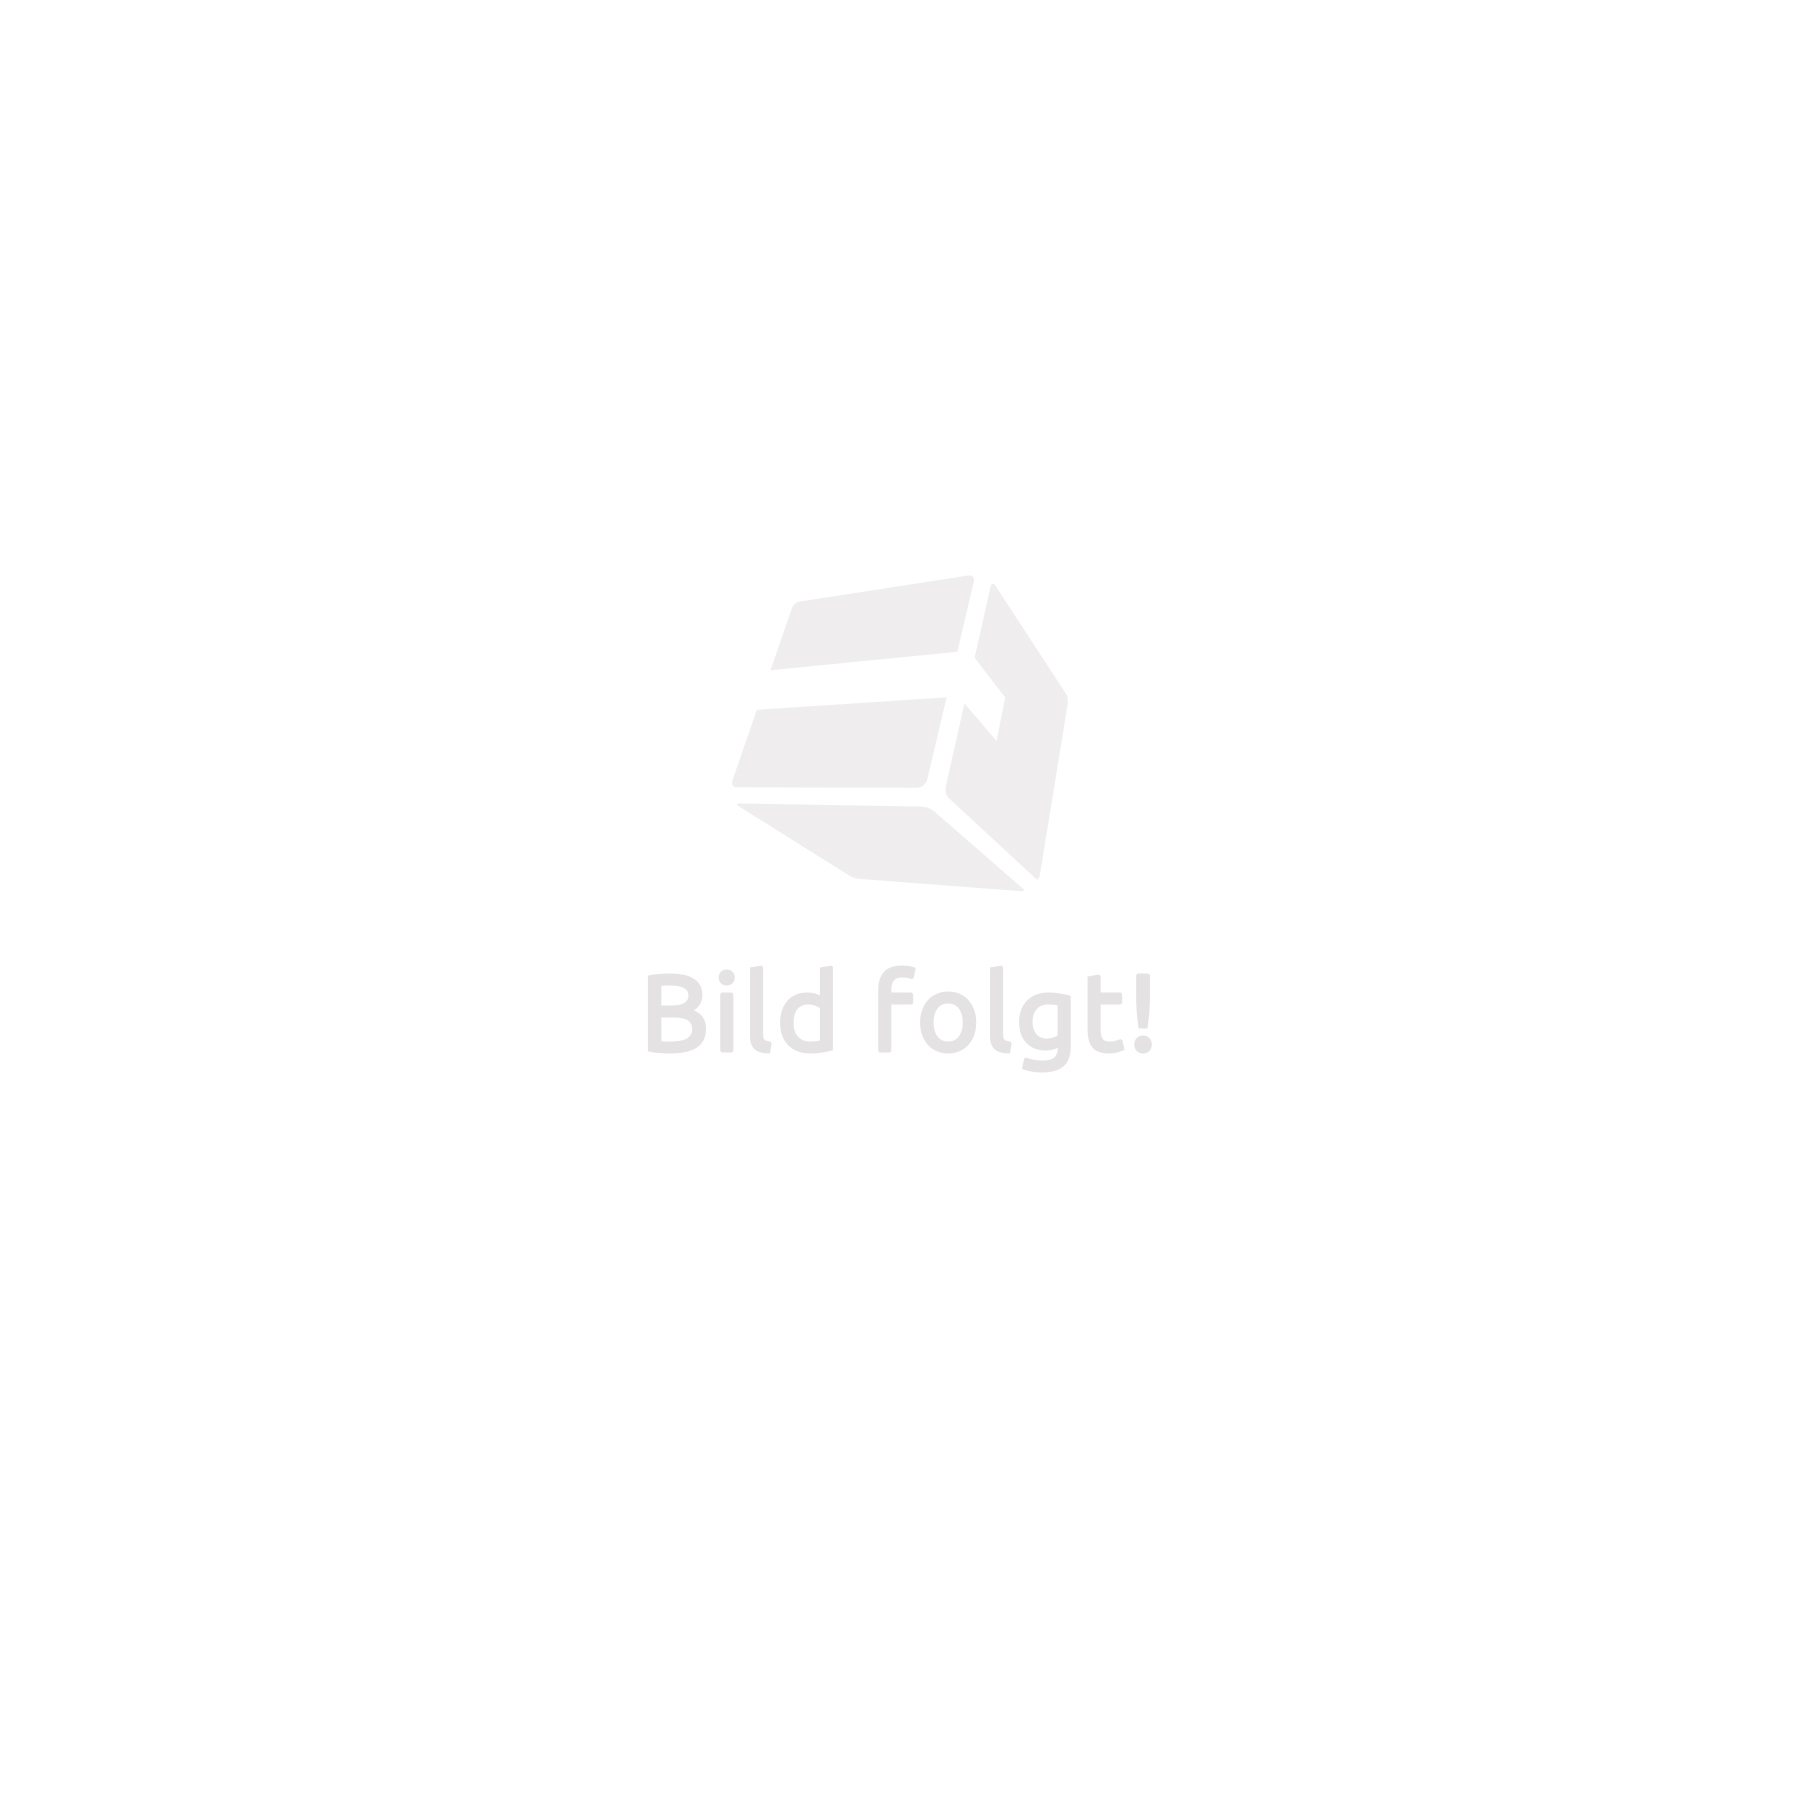 Massage chair made of artificial leather white